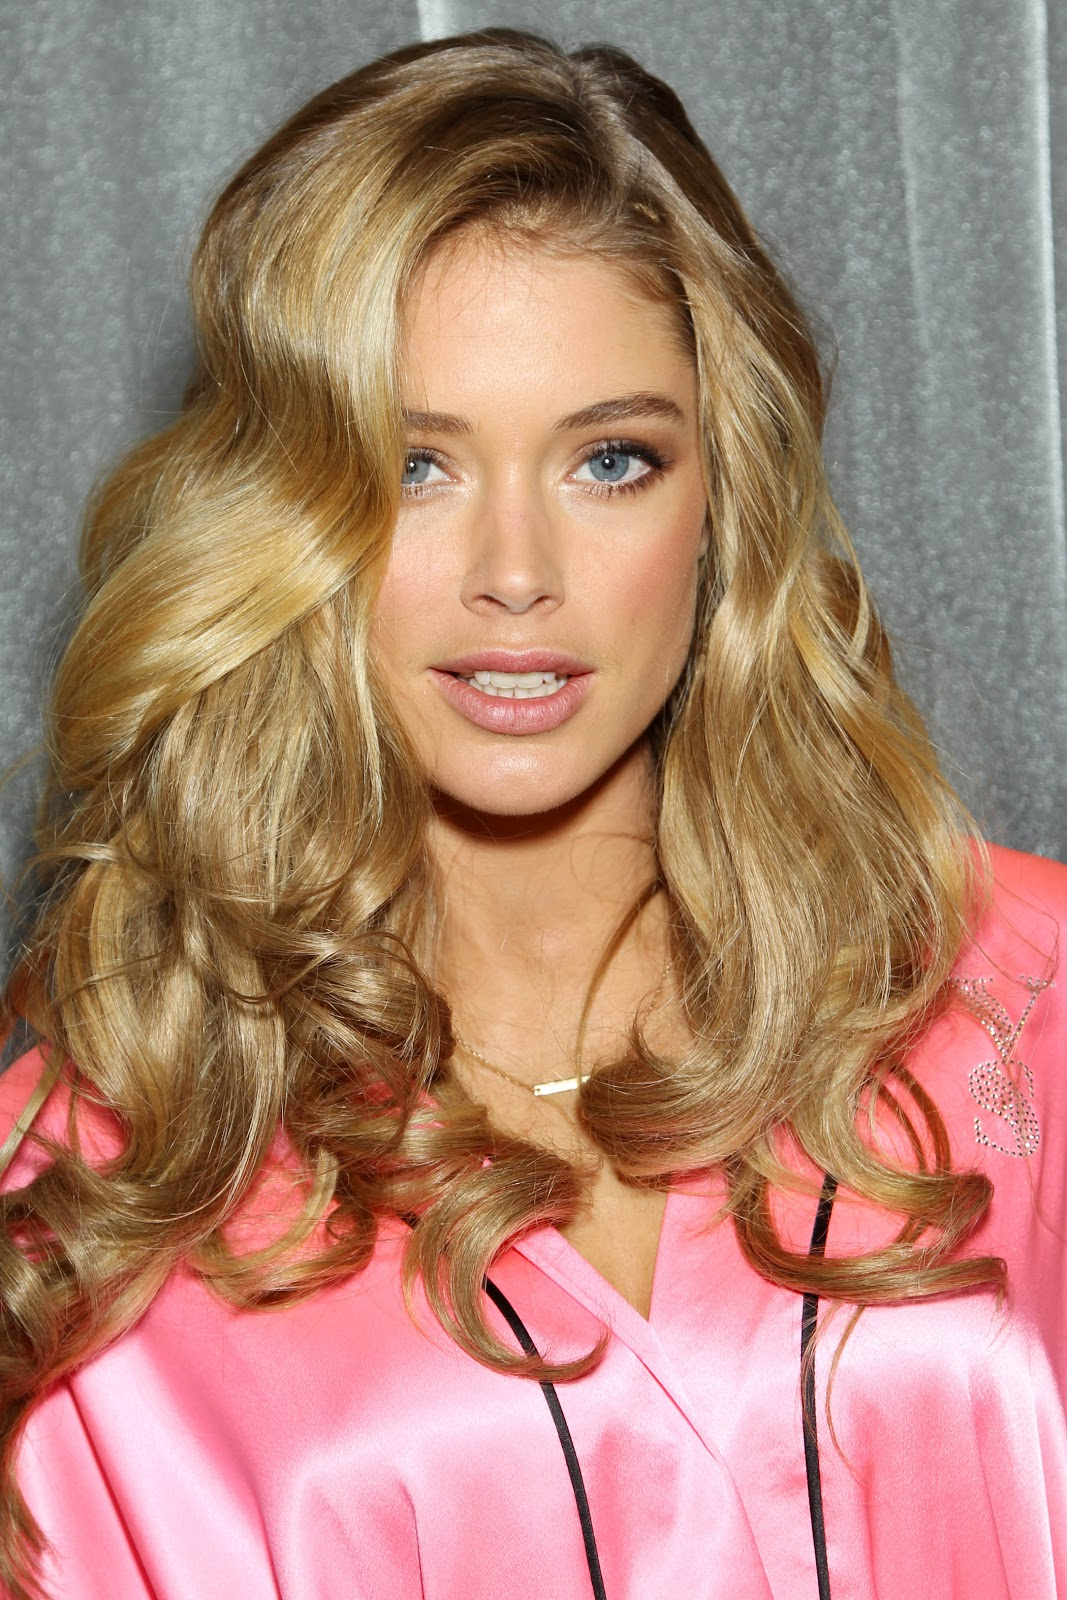 CITIZEN CHIC: Backstage Beauties: Doutzen @ the 2012 ...